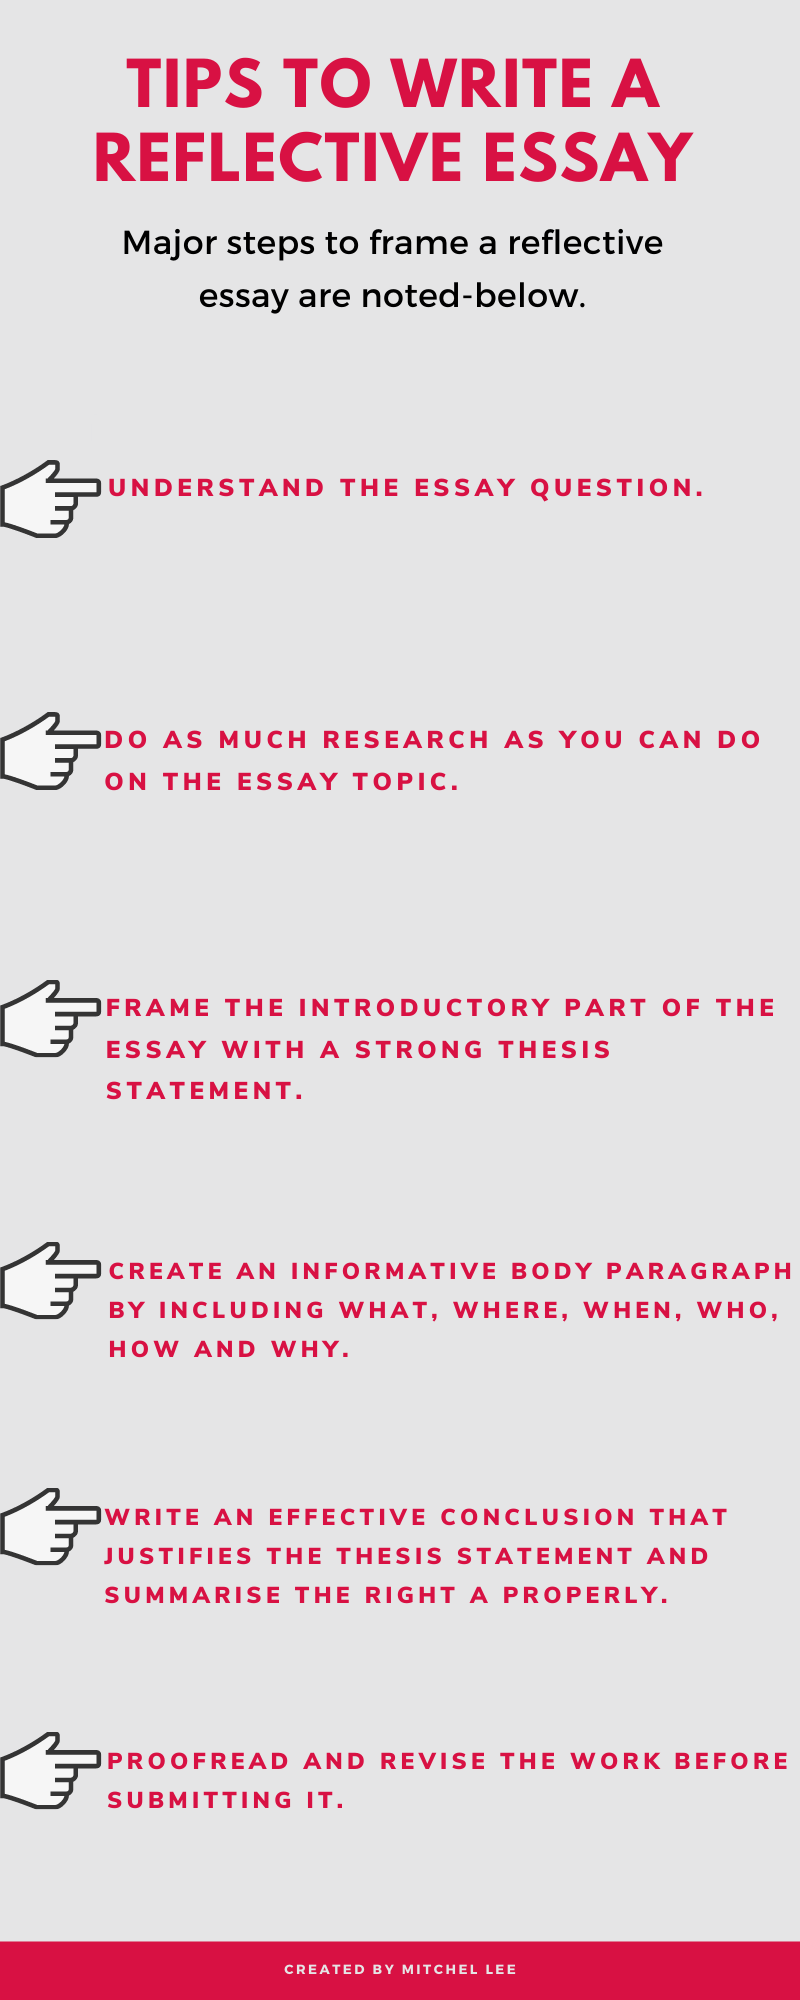 How To Write A Reflection Paragraph - arxiusarquitectura